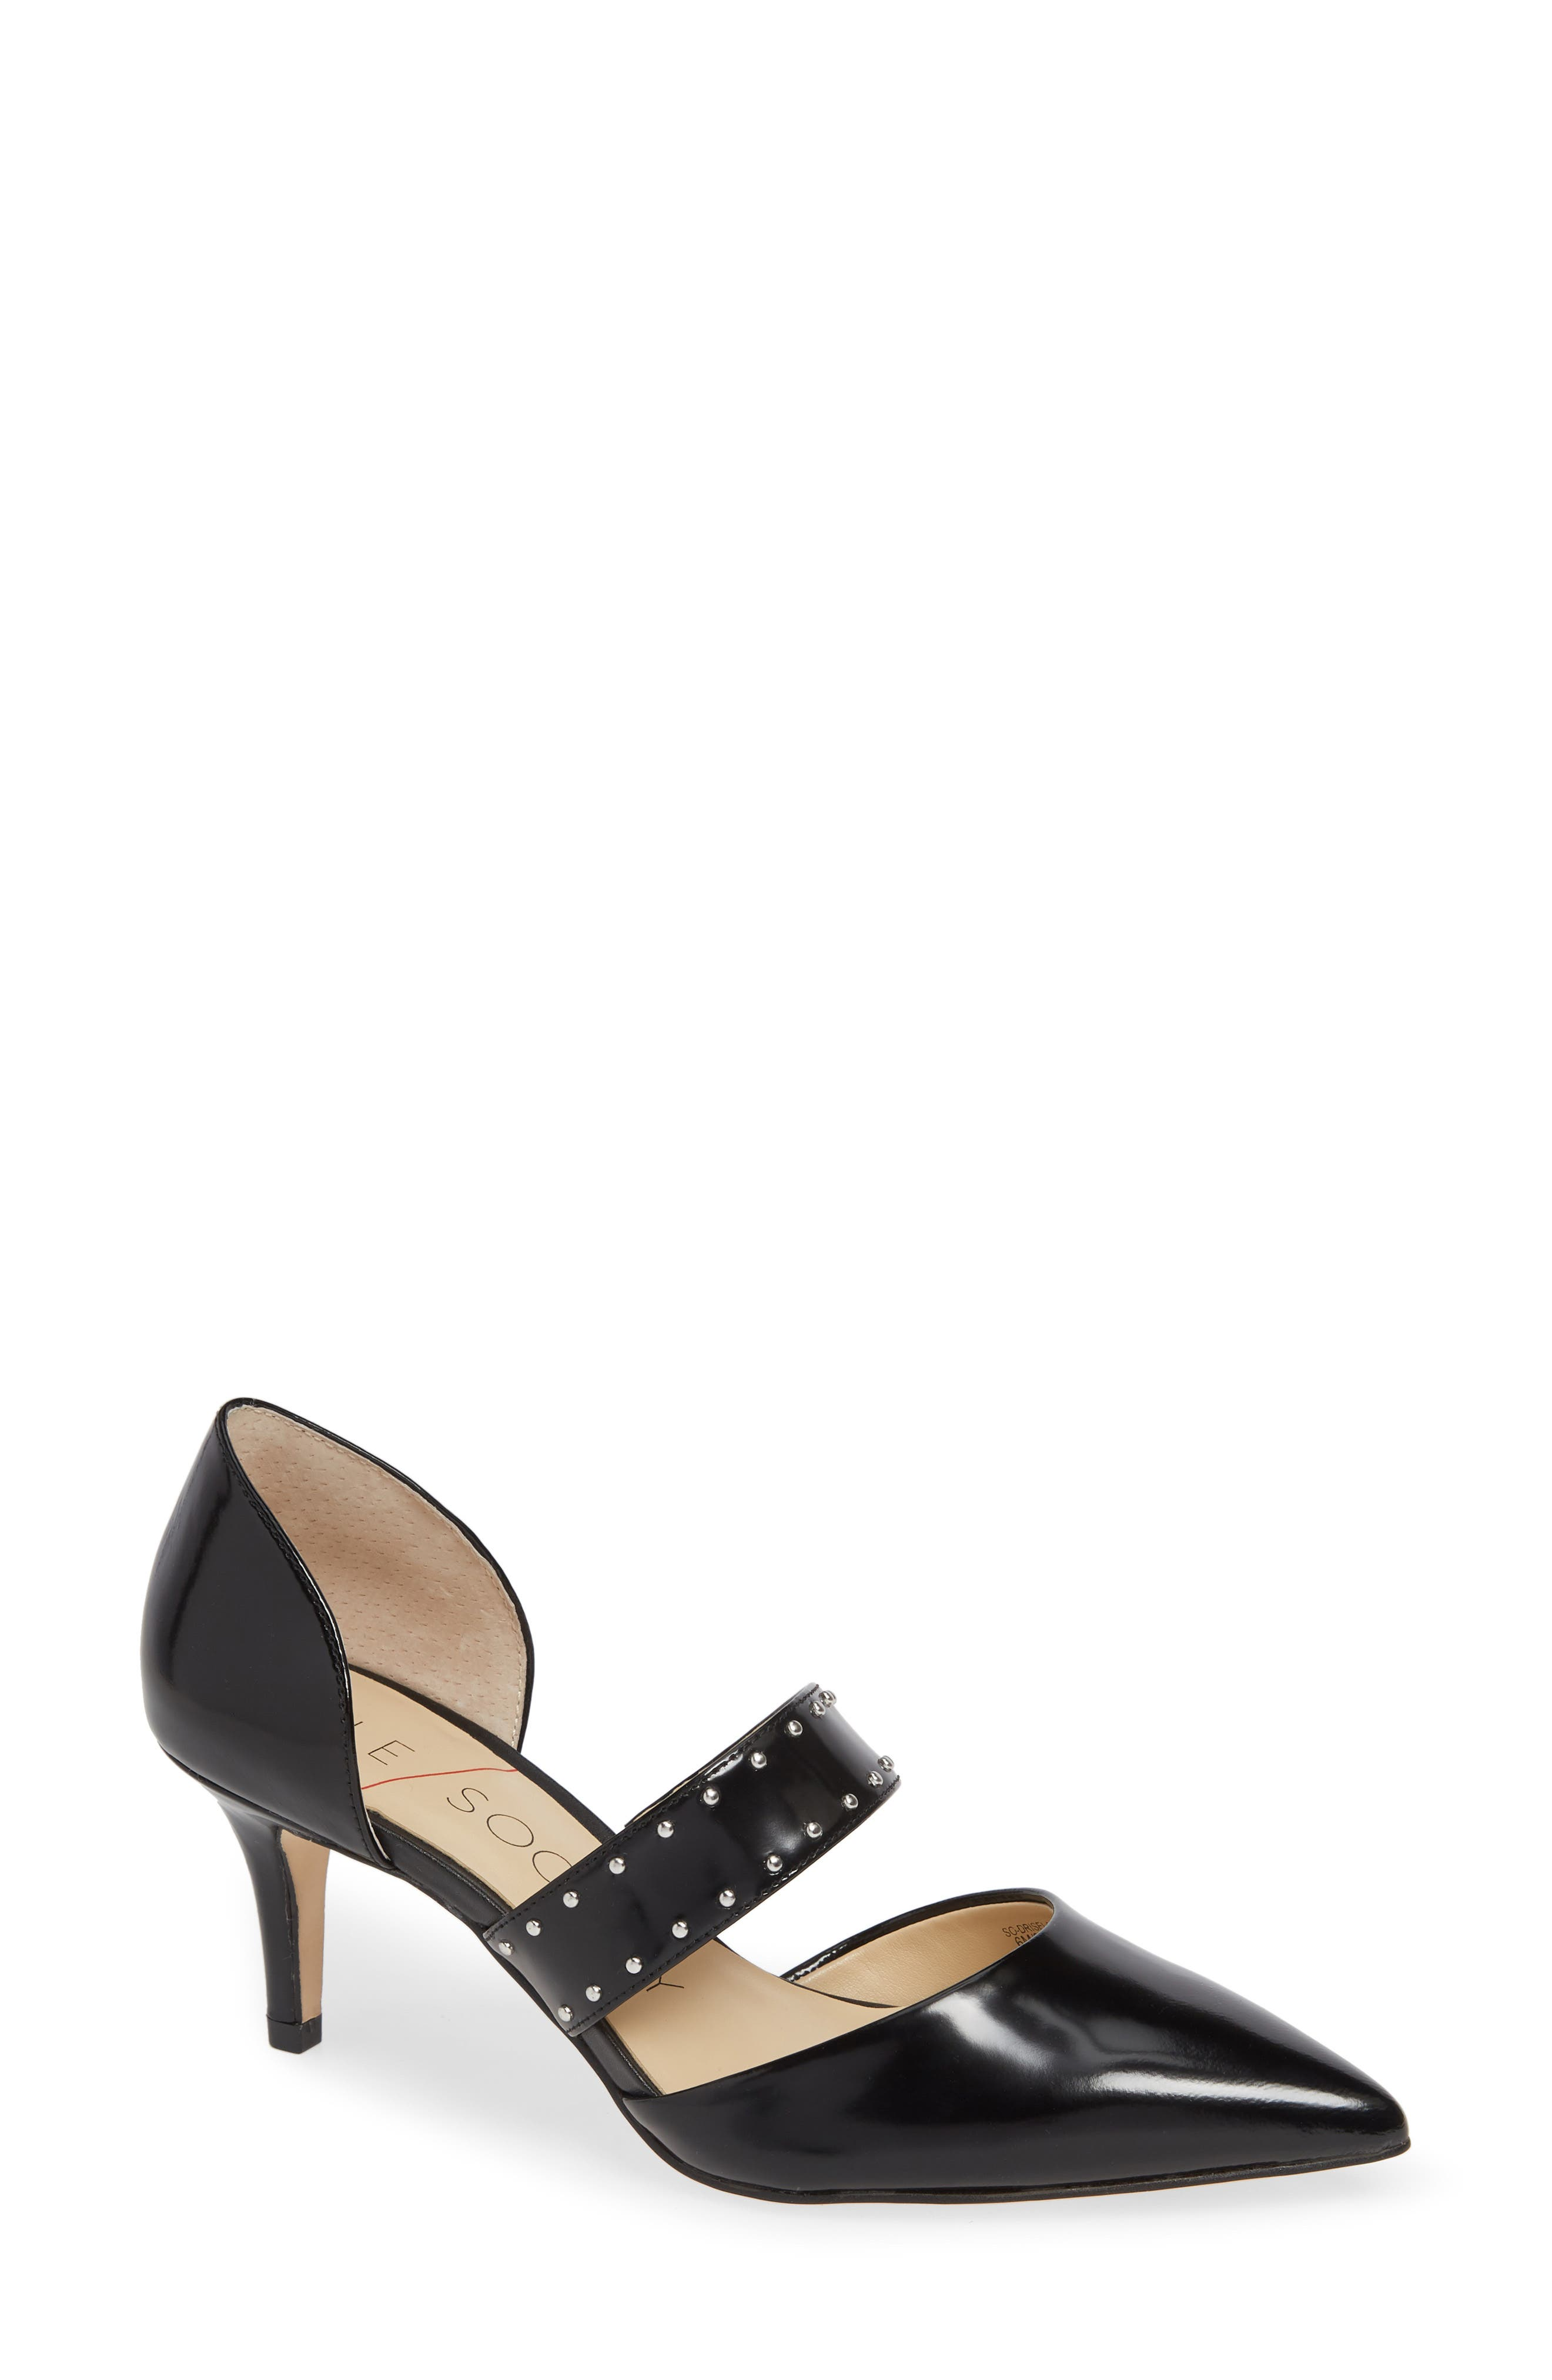 SOLE SOCIETY Drisela Pump, Main, color, BLACK LEATHER